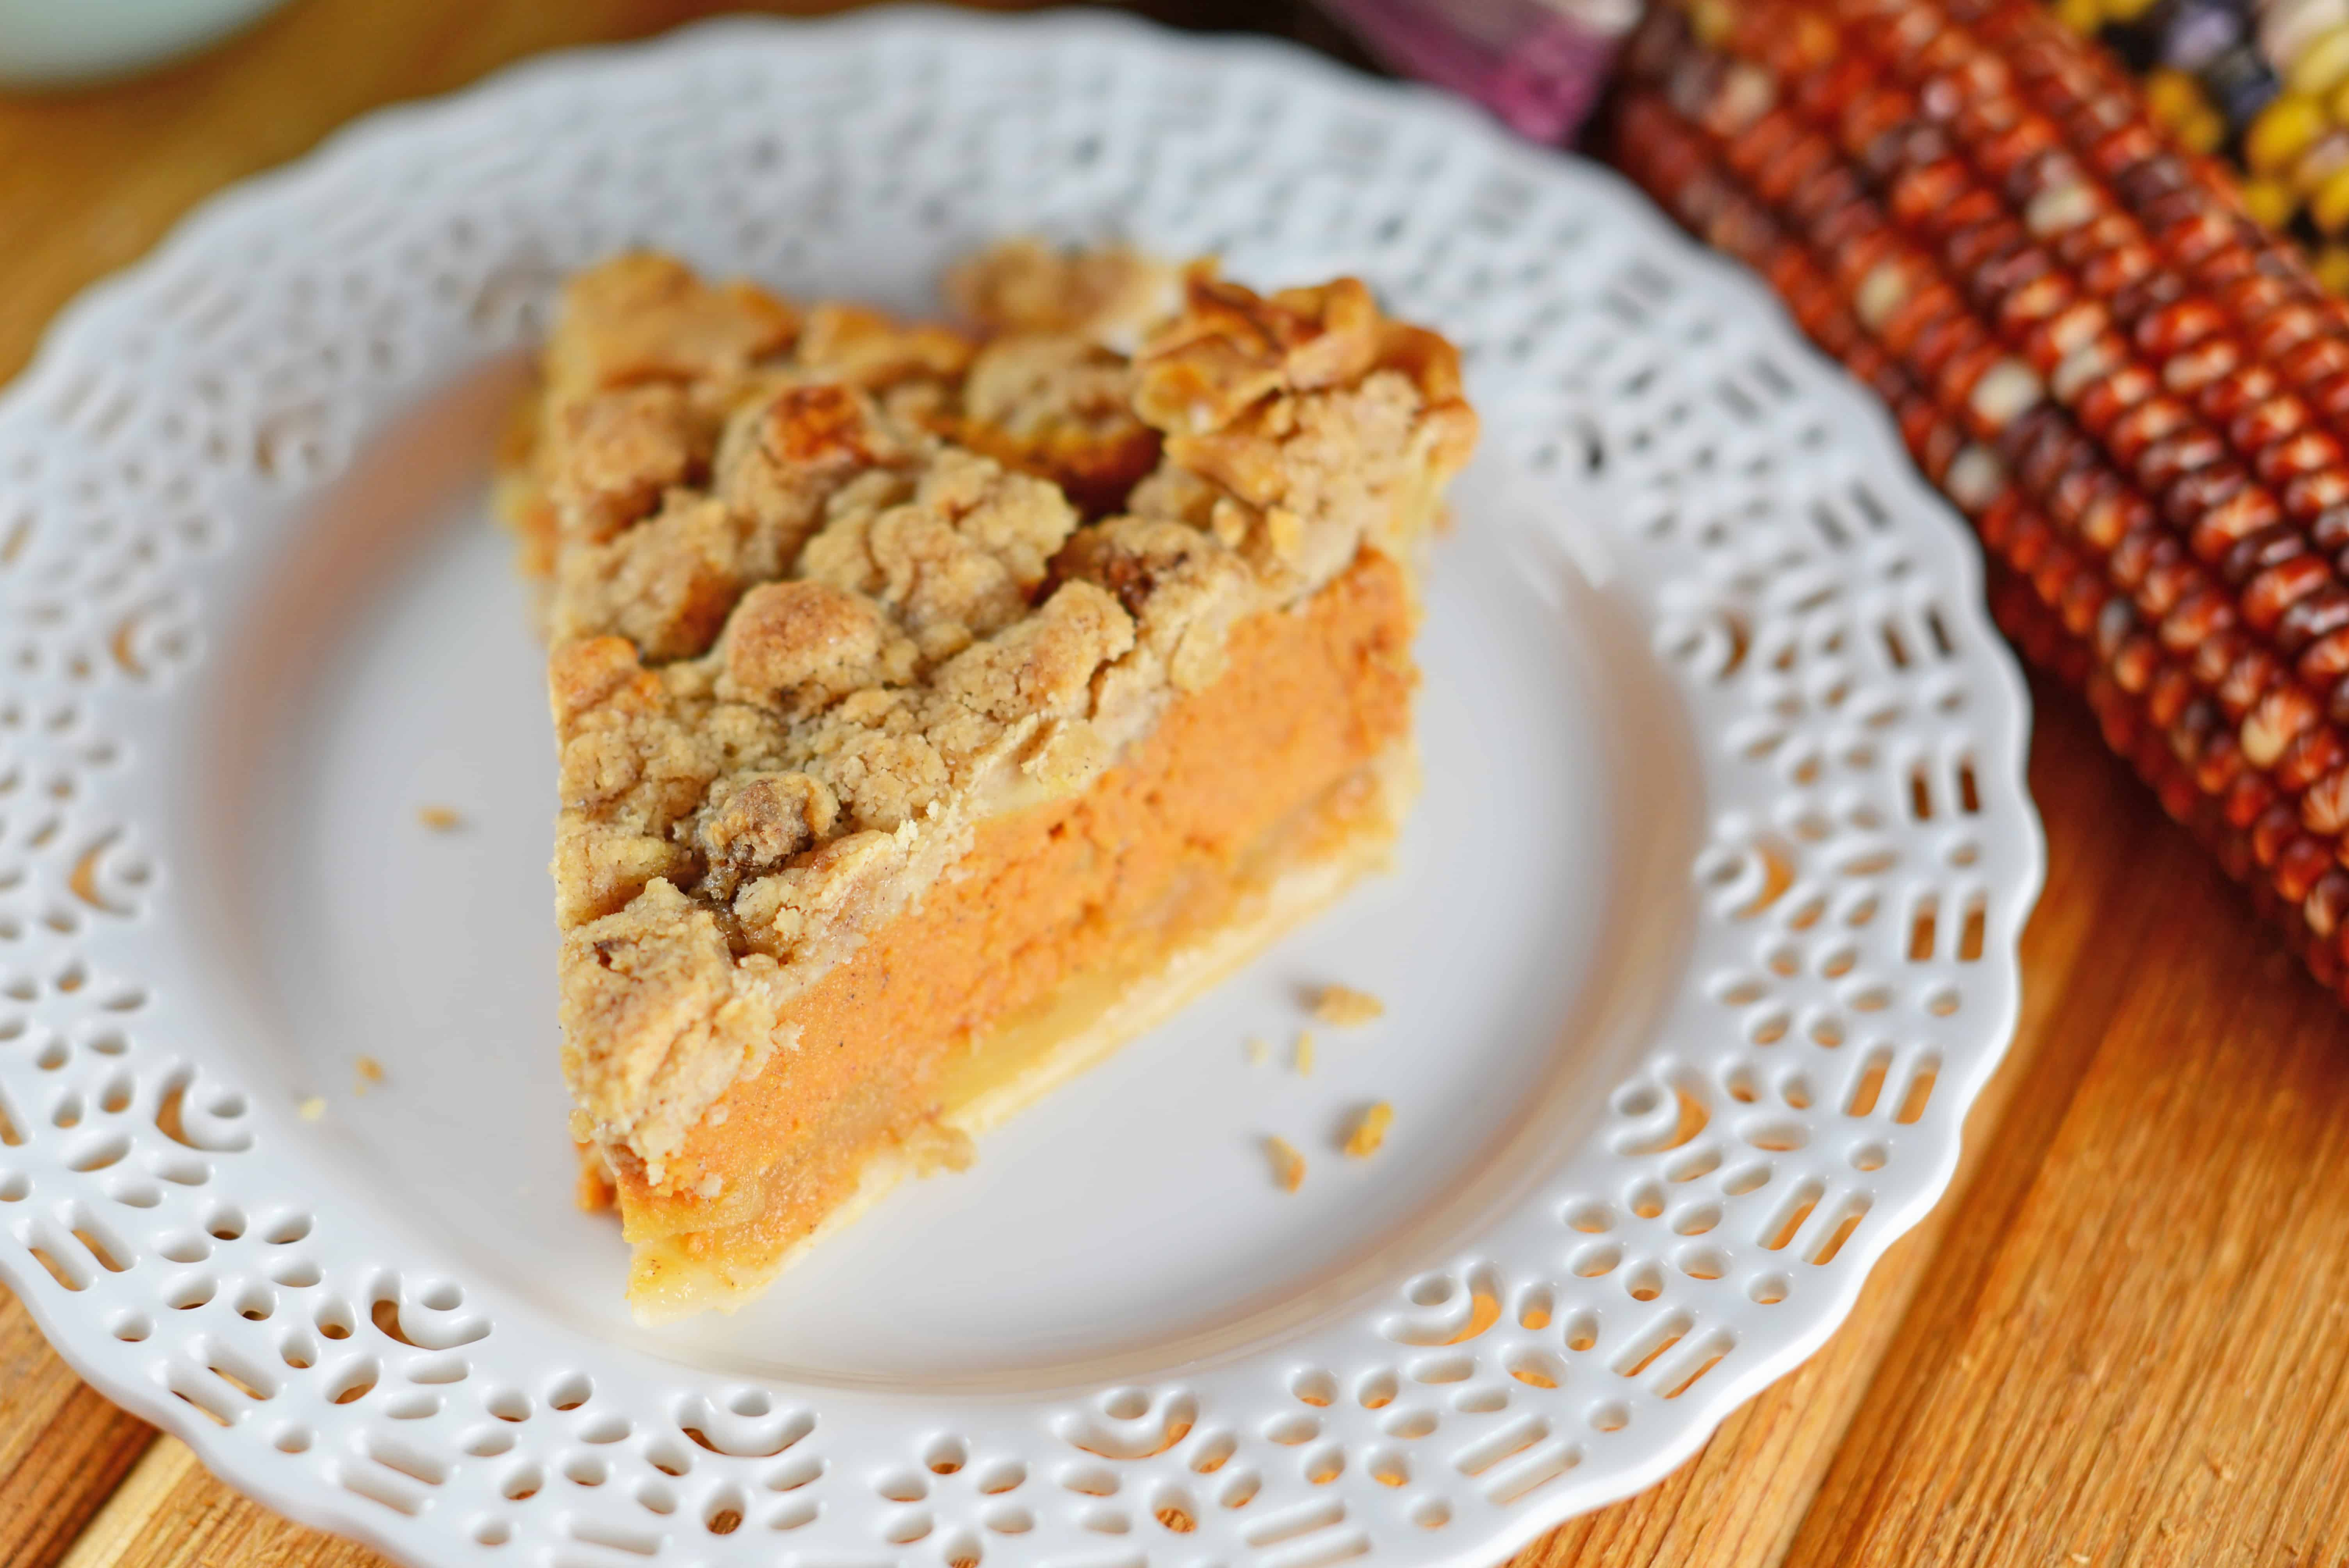 Pumpkin Apple Pie is the best of both worlds! Pumpkin pie and apple pie merged together in a pecan crust with streusel topping.